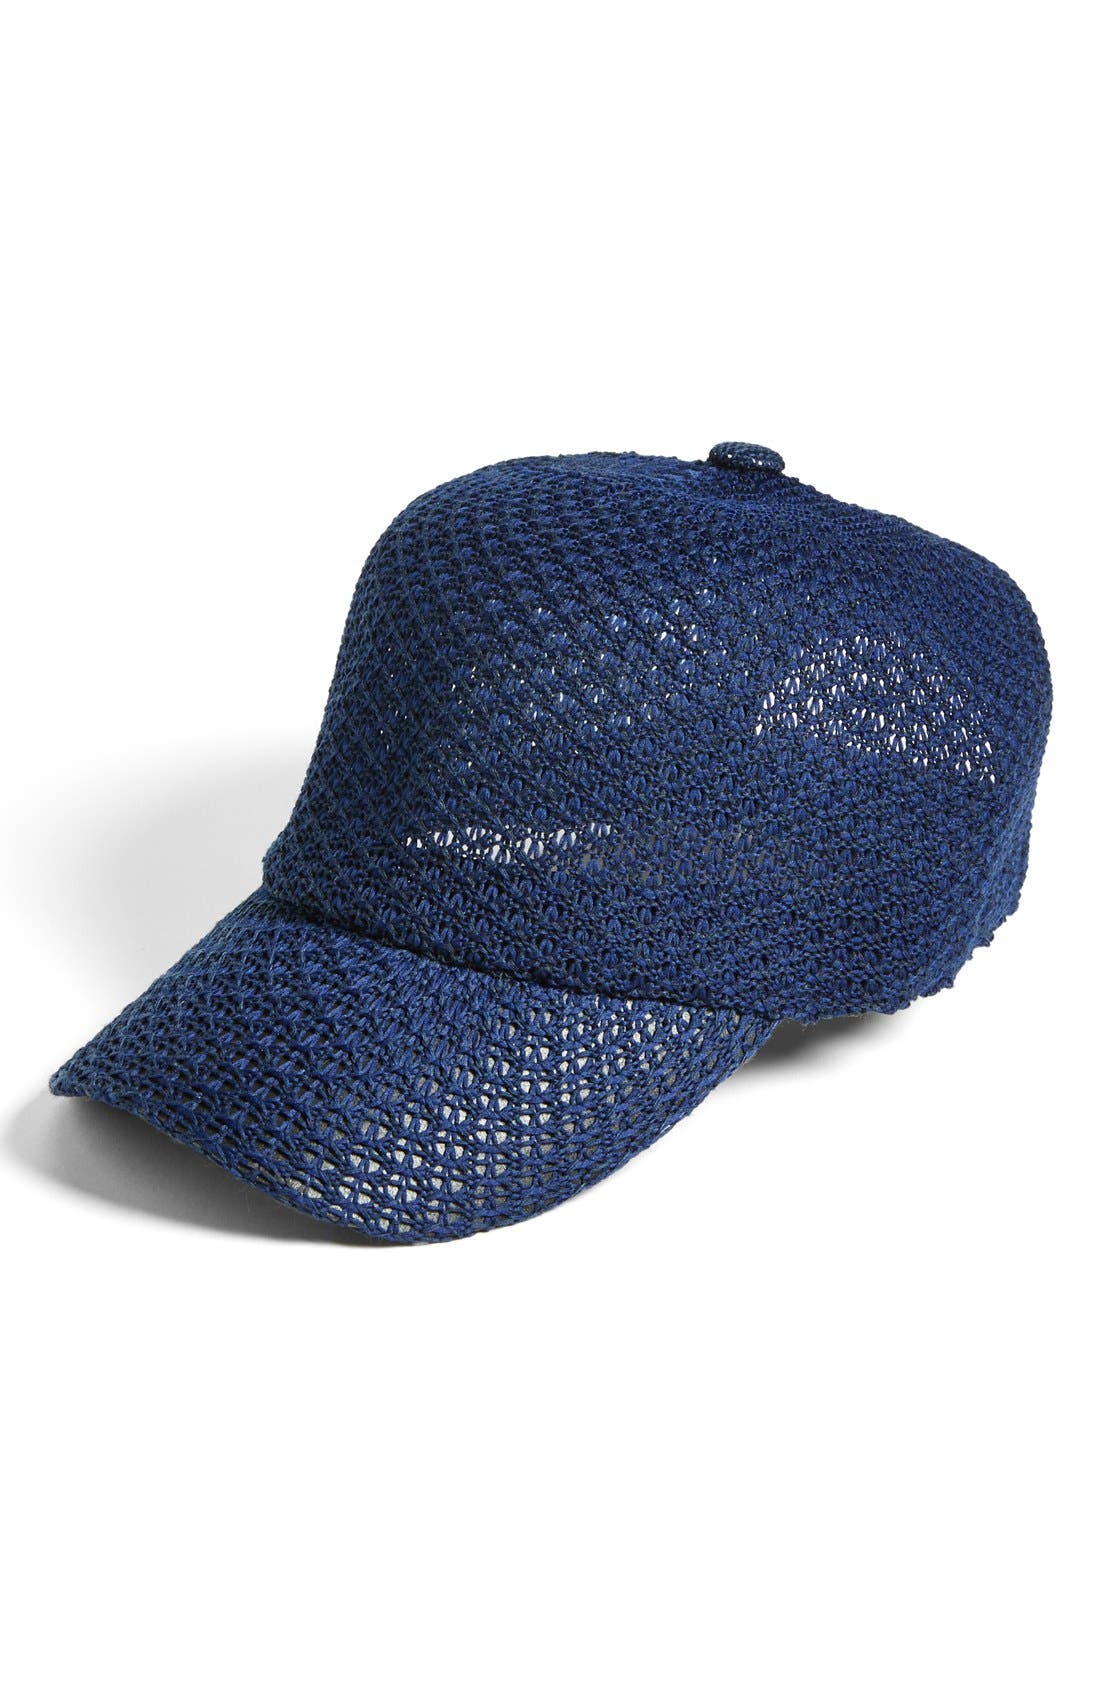 Alternate Image 1 Selected - Collection XIIX 'Color Expansion' Baseball Cap